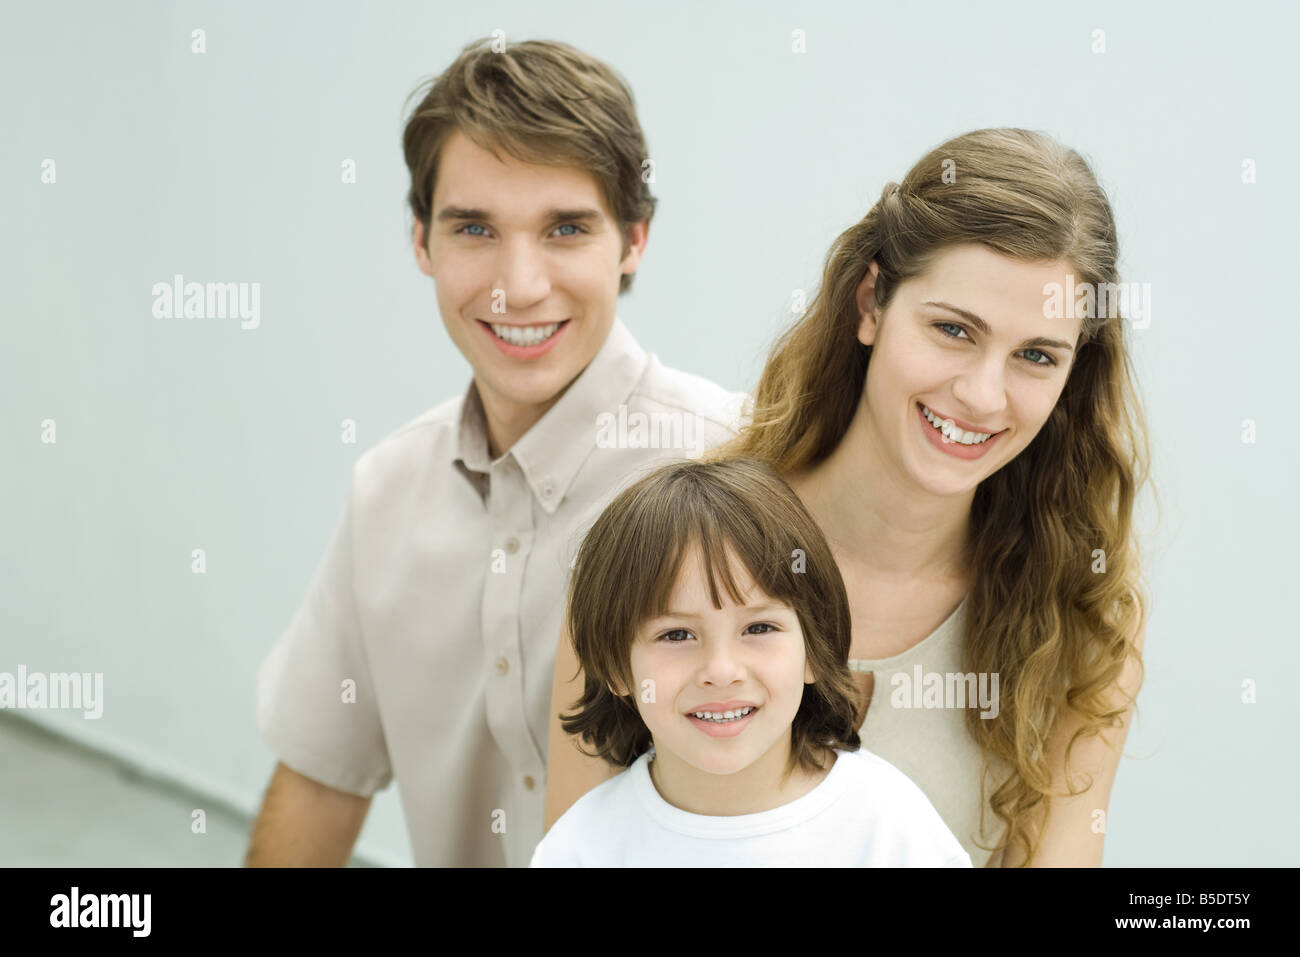 Family smiling at camera, portrait - Stock Image